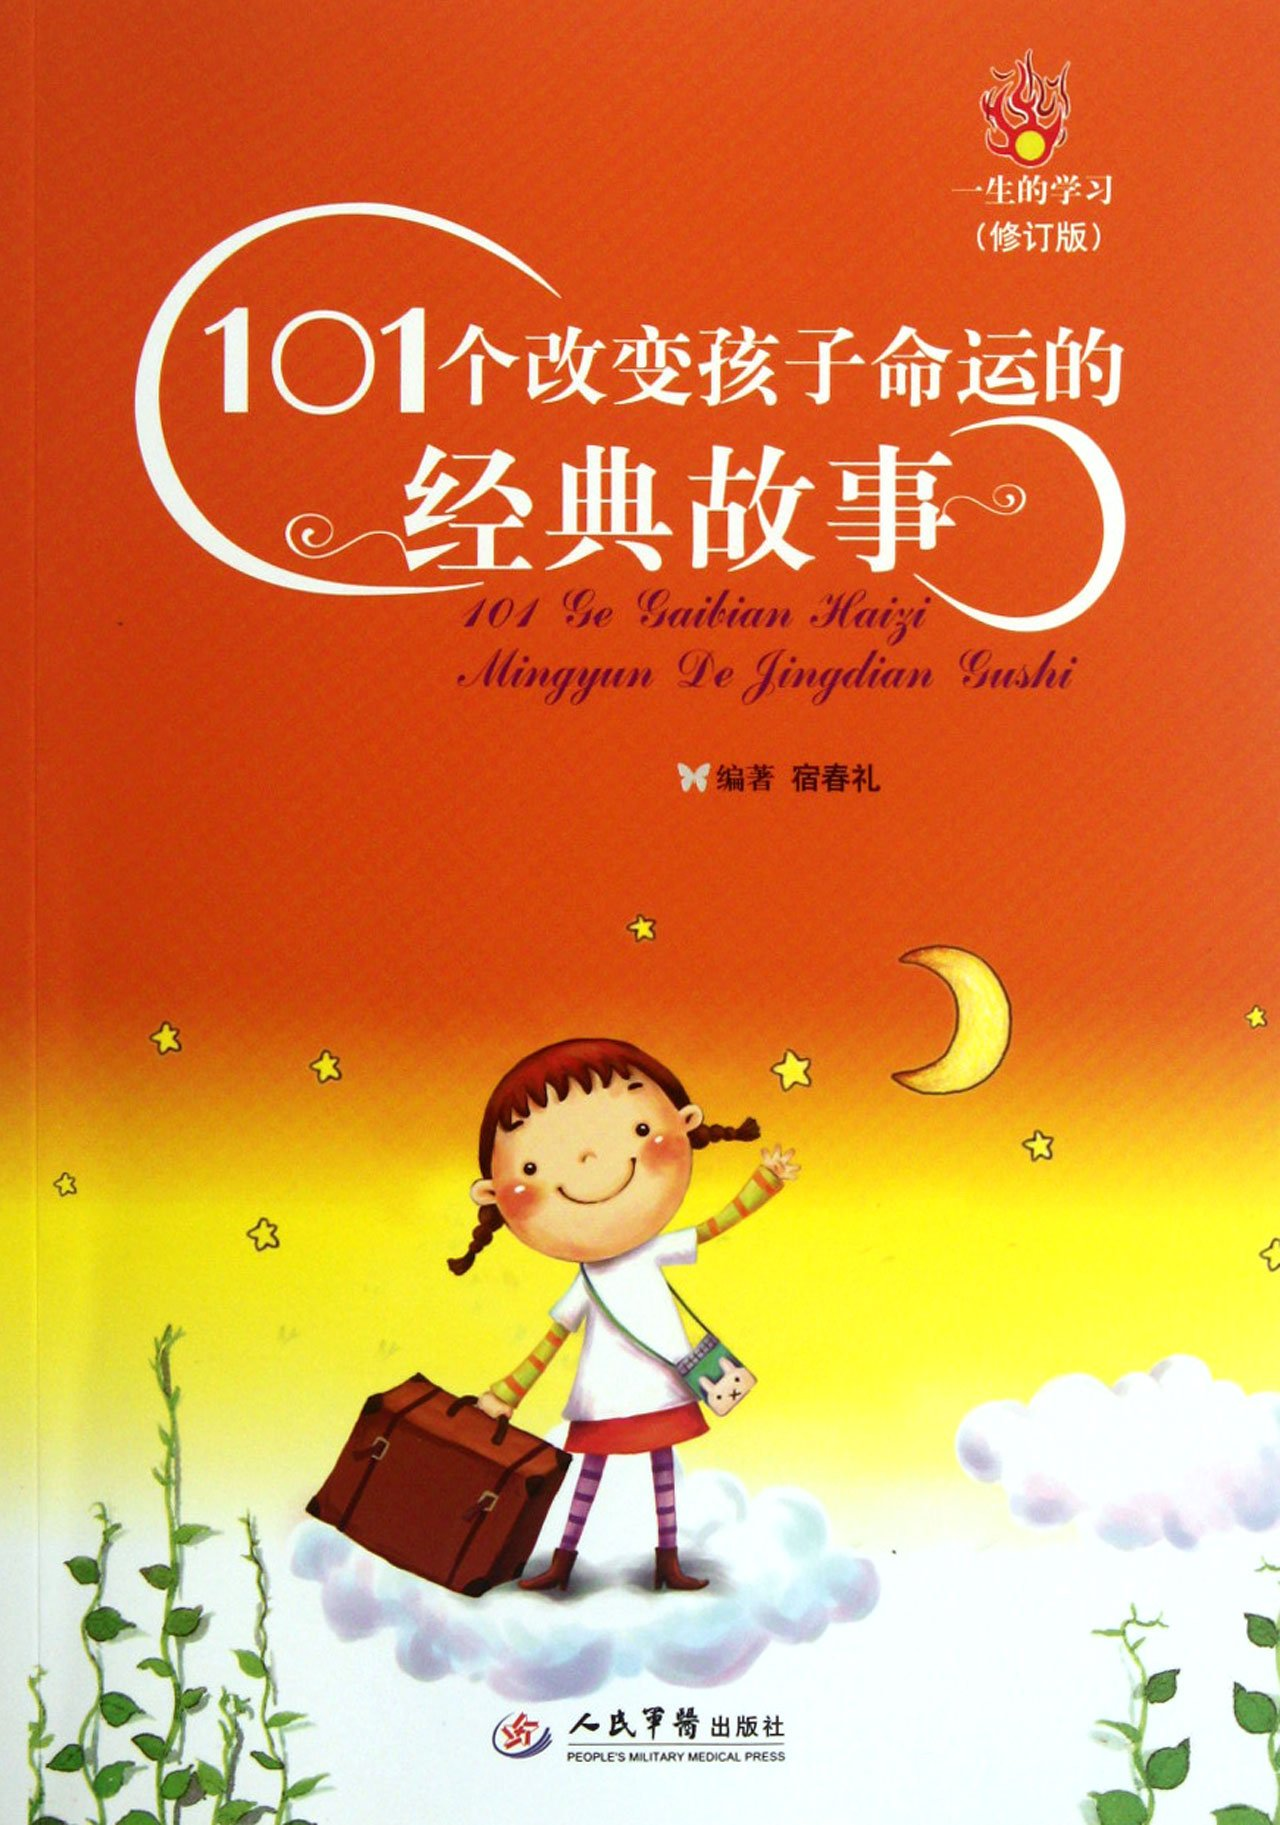 101 Classic Stories Changing Childrens Life (Revised Edition) (Chinese Edition) ebook